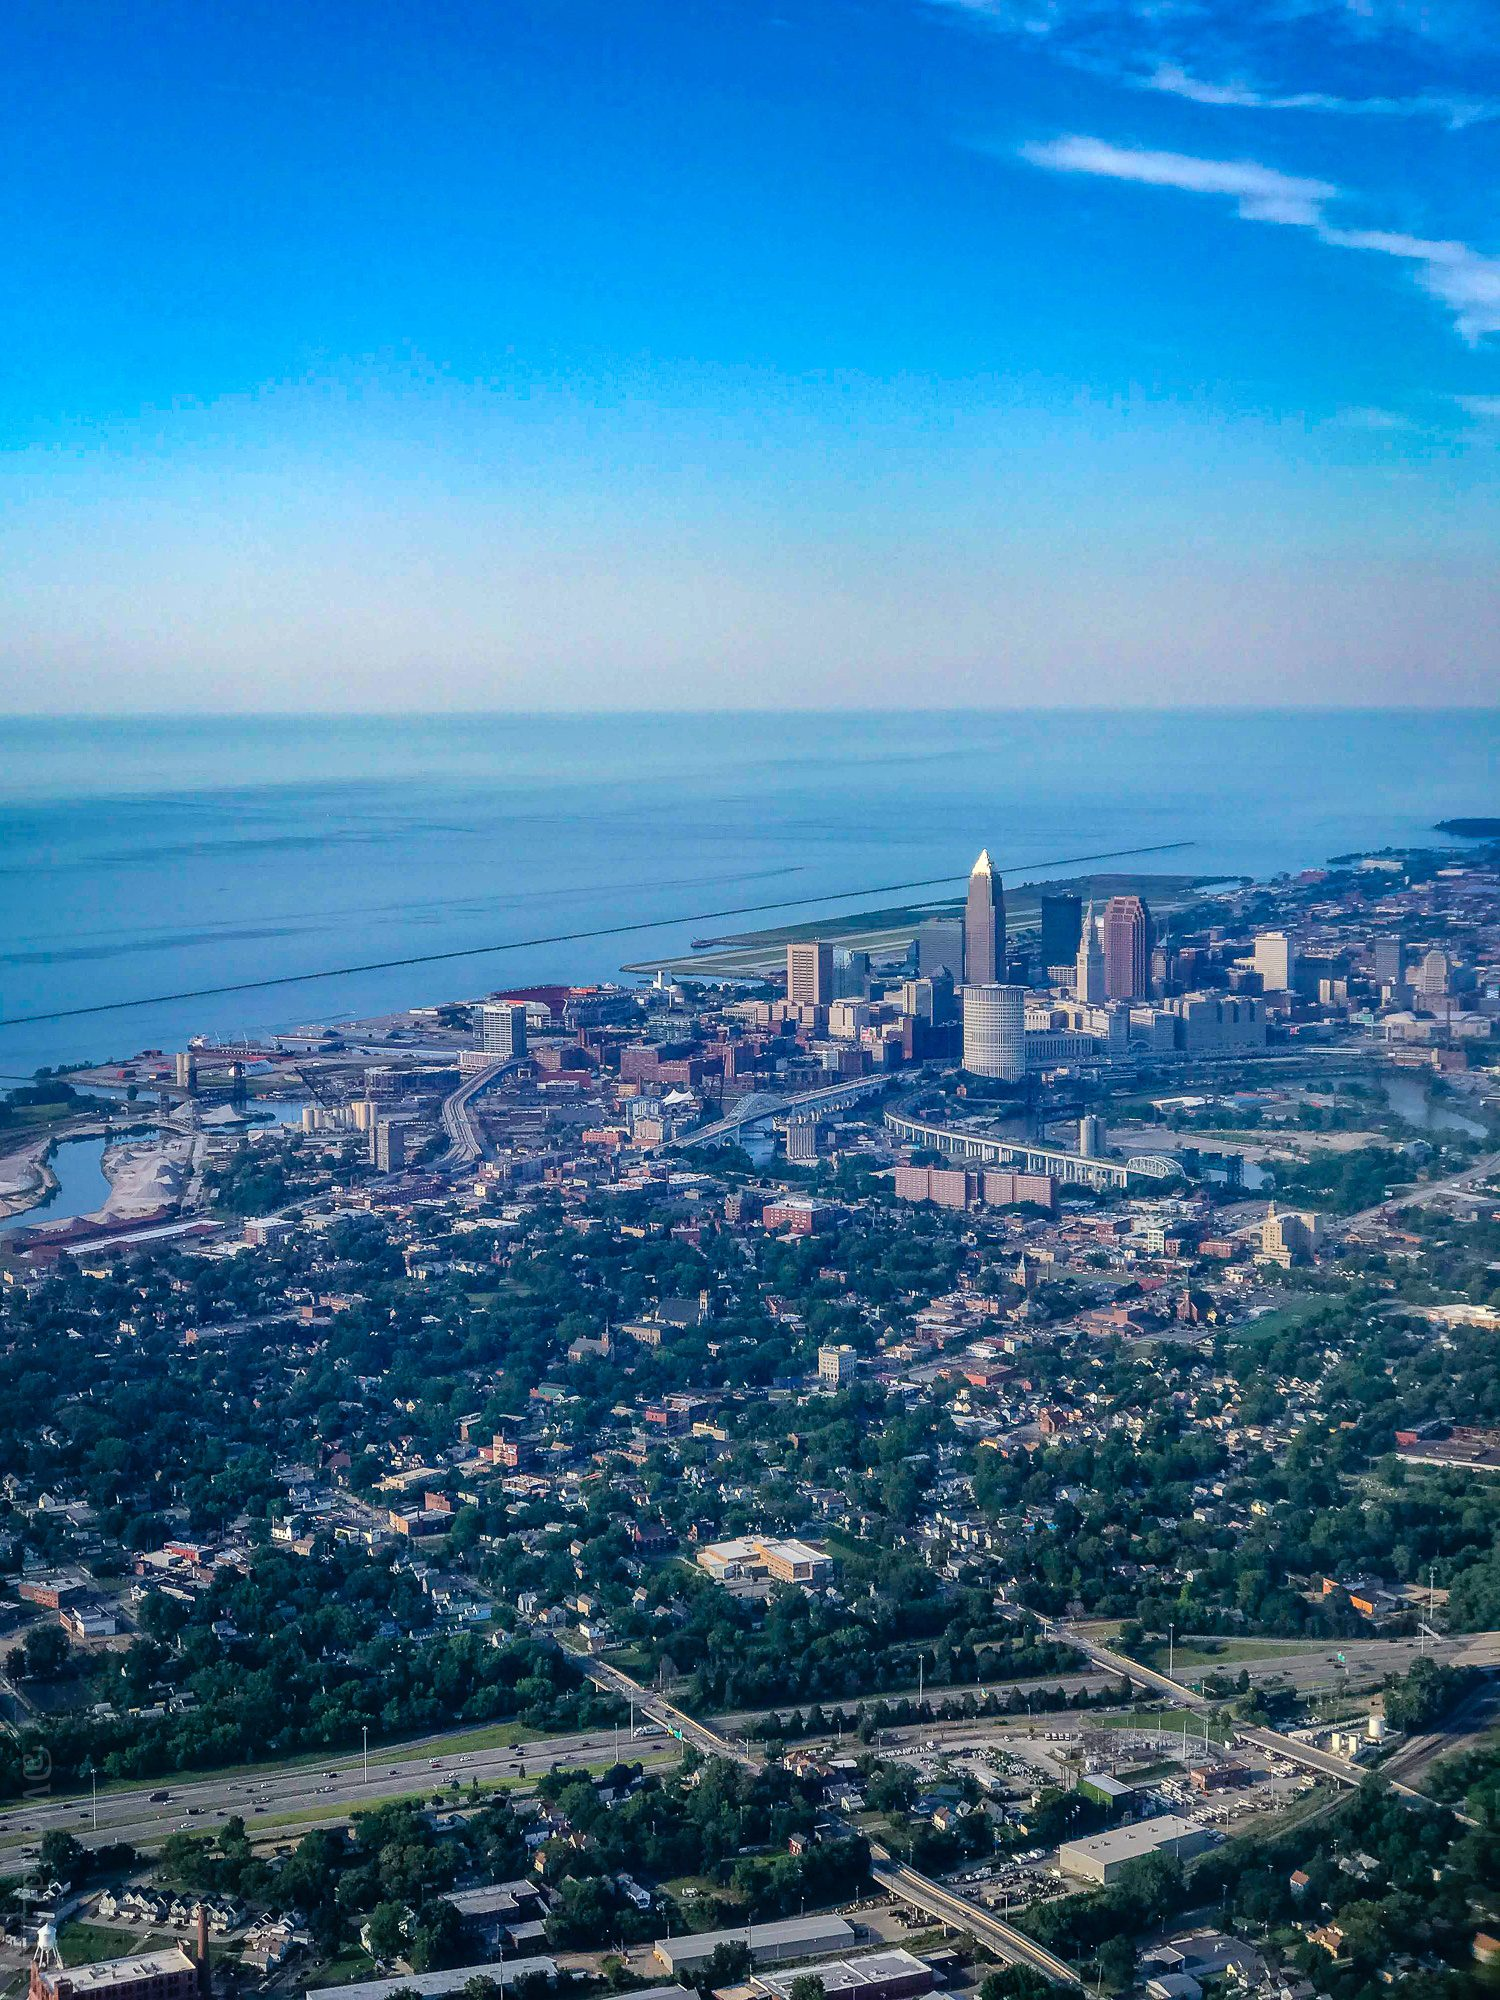 My plane coming into Cleveland, Ohio during a short trip.